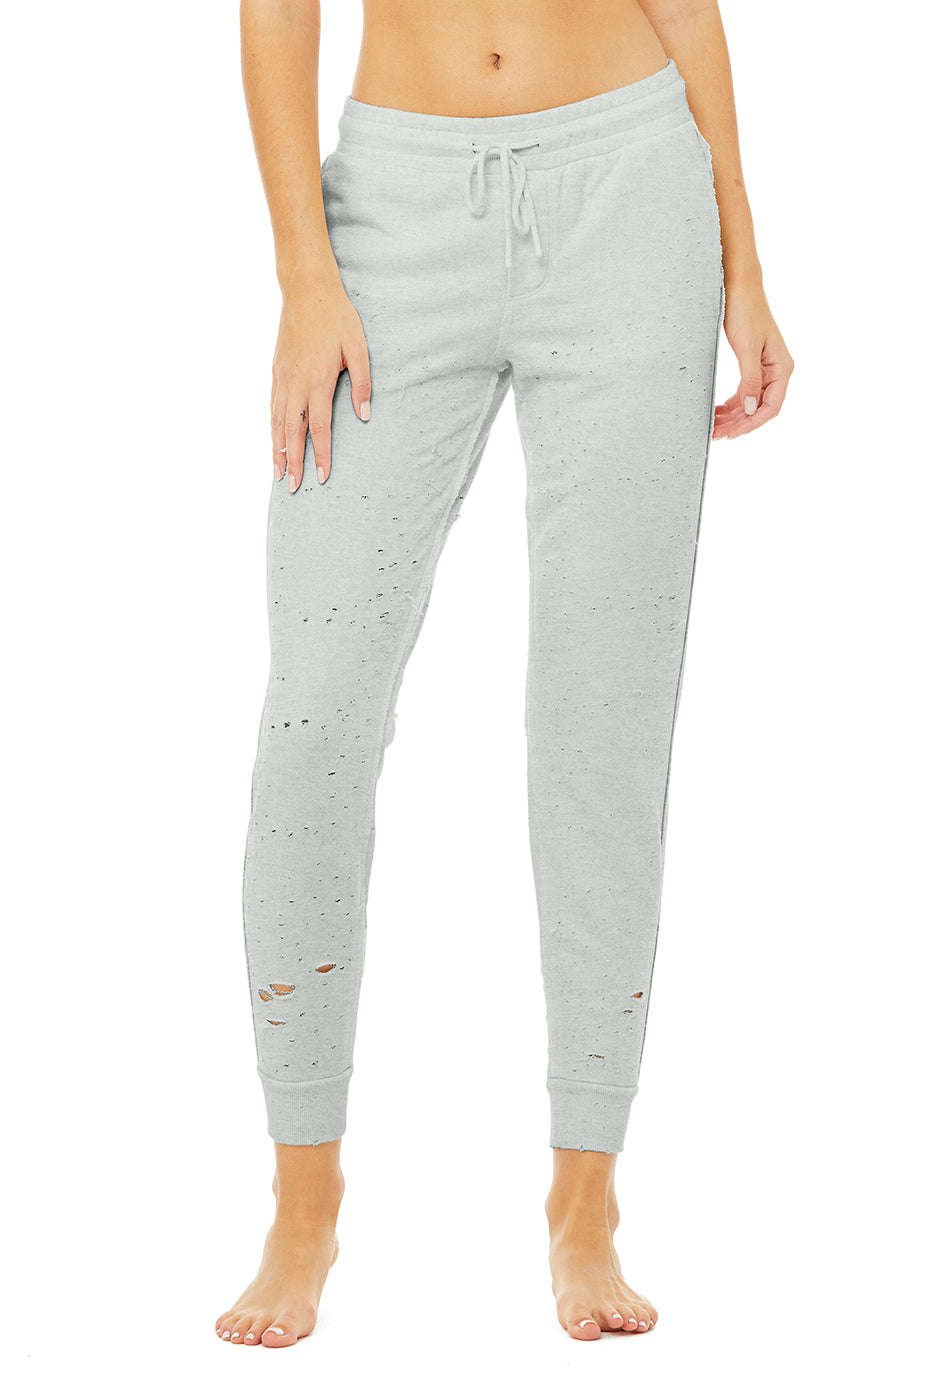 Fierce Sweatpant in Dove Grey